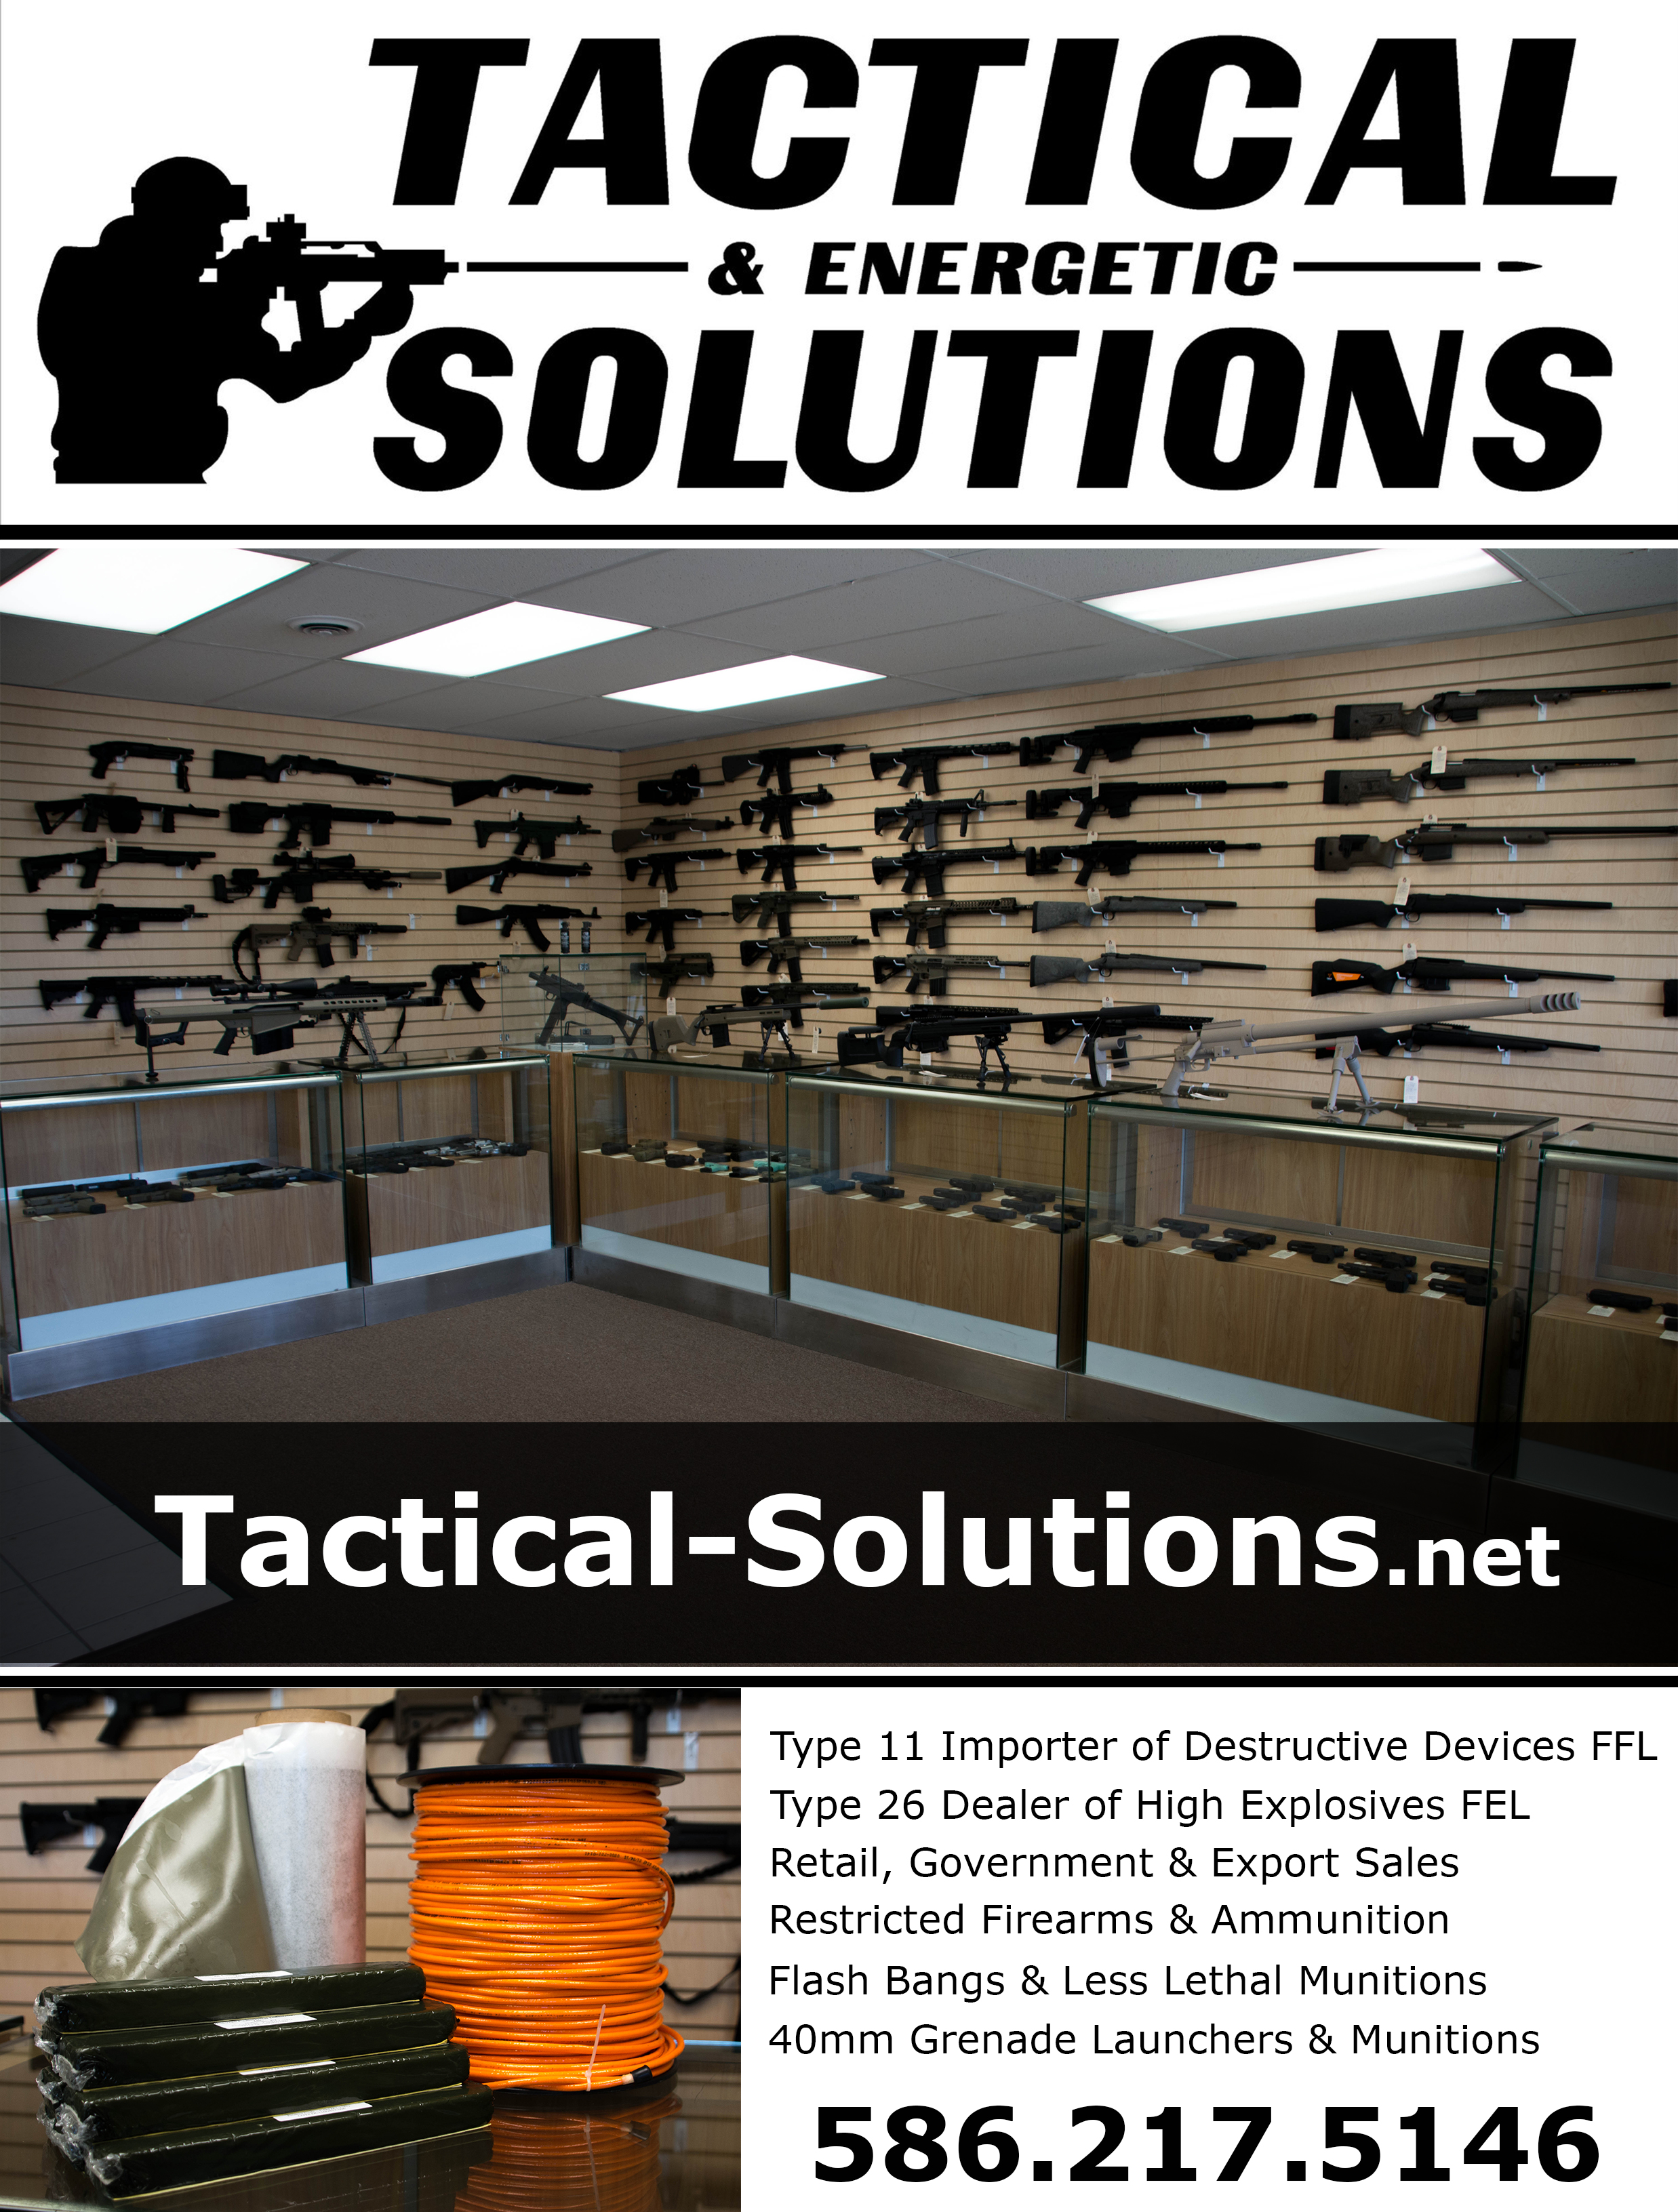 Tactical, TacticalSolutions, guns for sale, firearms for sale, firearms training, class 3 dealer, NFA dealer, Force on force training, government sales, police department sales, law enforcement sales, agency sales